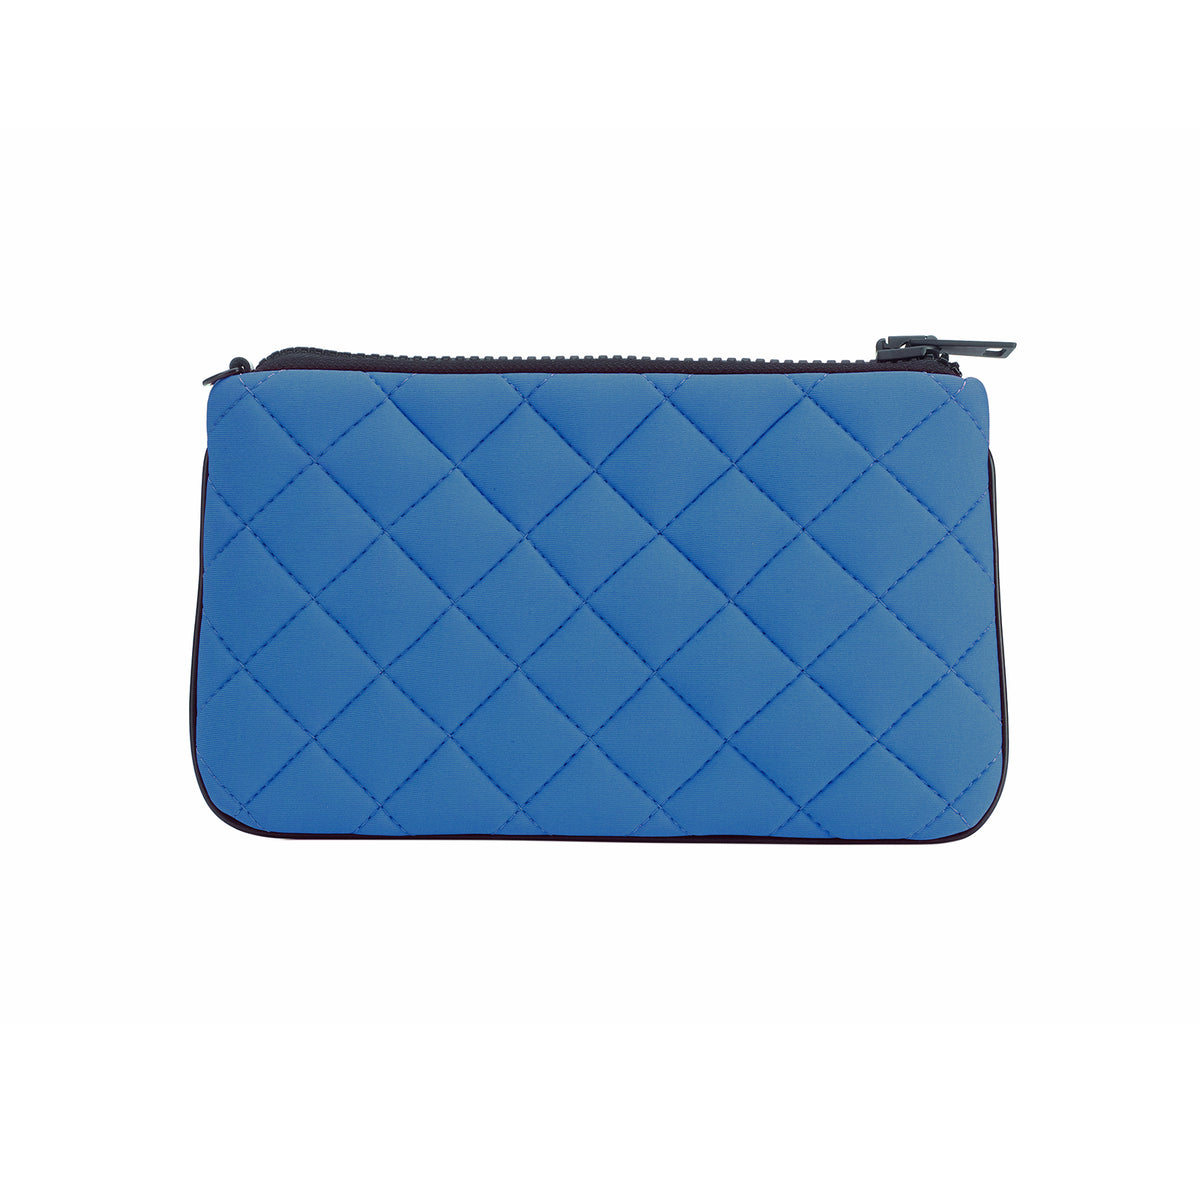 Neopren Clutch ZOE - Powder Blue